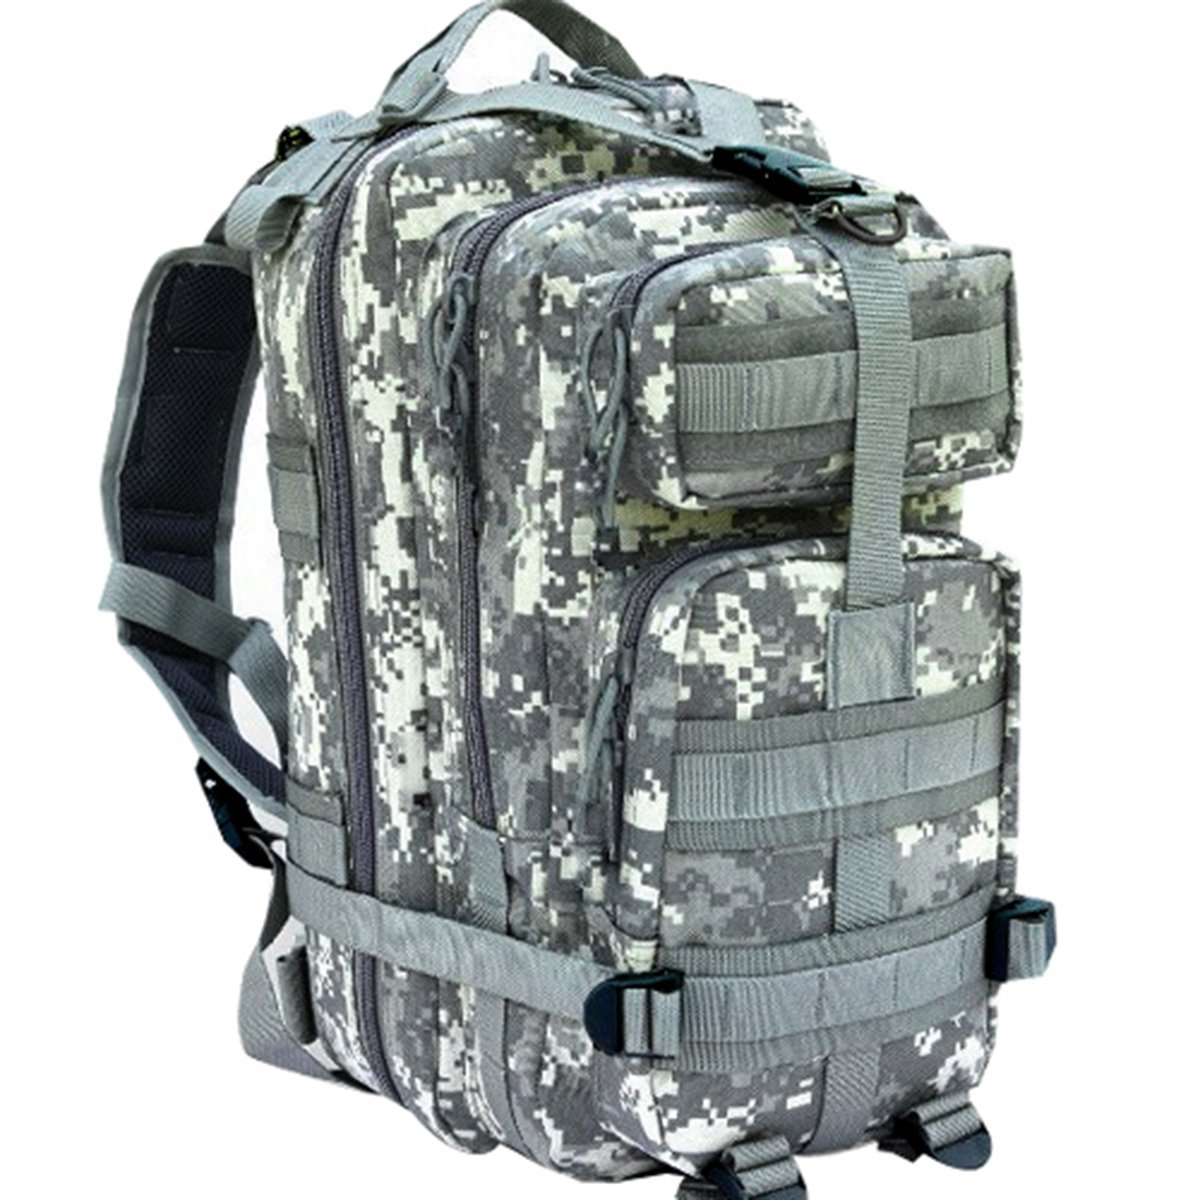 Amazon.com : CVLIFE Outdoor Tactical Backpack Military Rucksacks ...